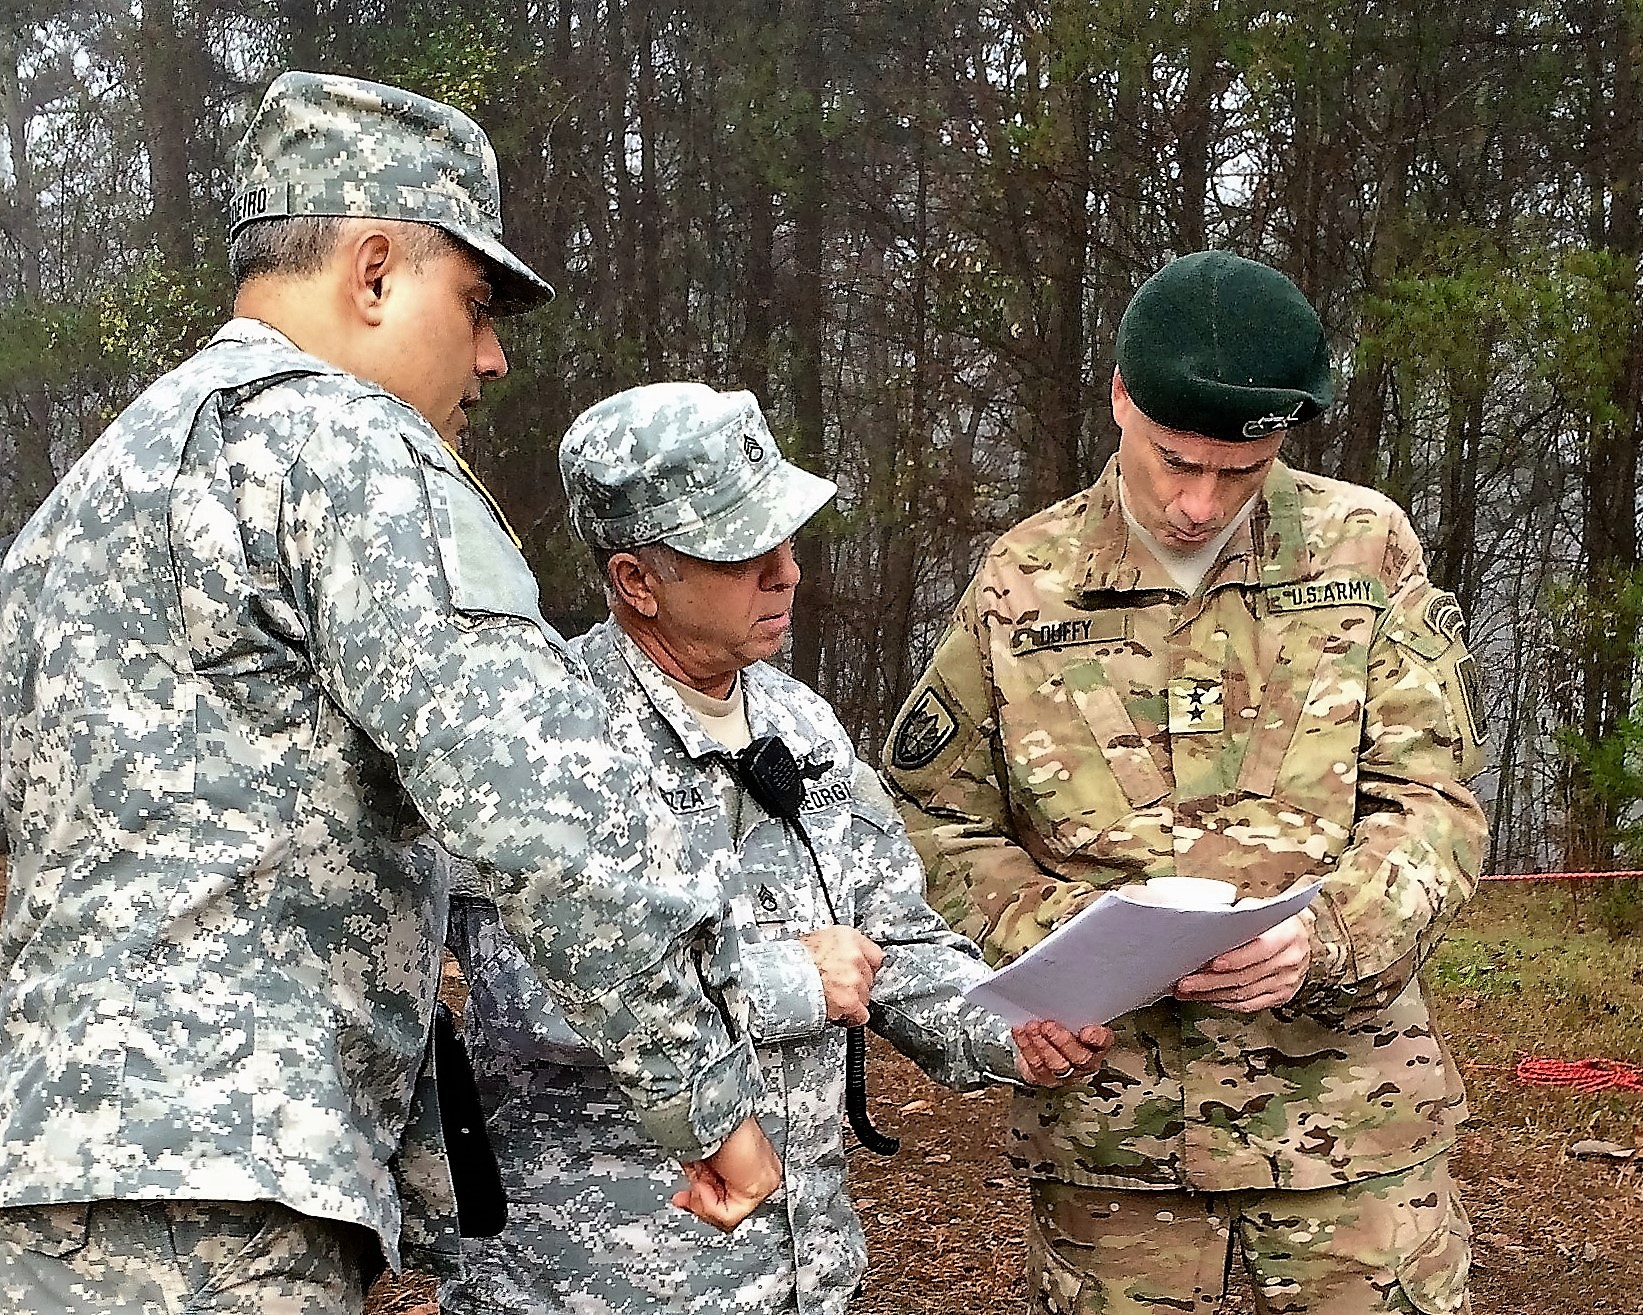 GEORGIA NATIONAL CEMETERY, Canton, Georgia, December 12, 2015 – Capt. Anazion Cordeiro (left) and Staff Sgt. Richard Carrozza (center) provide an overview of Georgia State Defense Force operations to Maj. Gen. William F. Duffy (right). (Georgia State Defense Force photo by Pvt. Michael Chapman, Public Affairs Office)